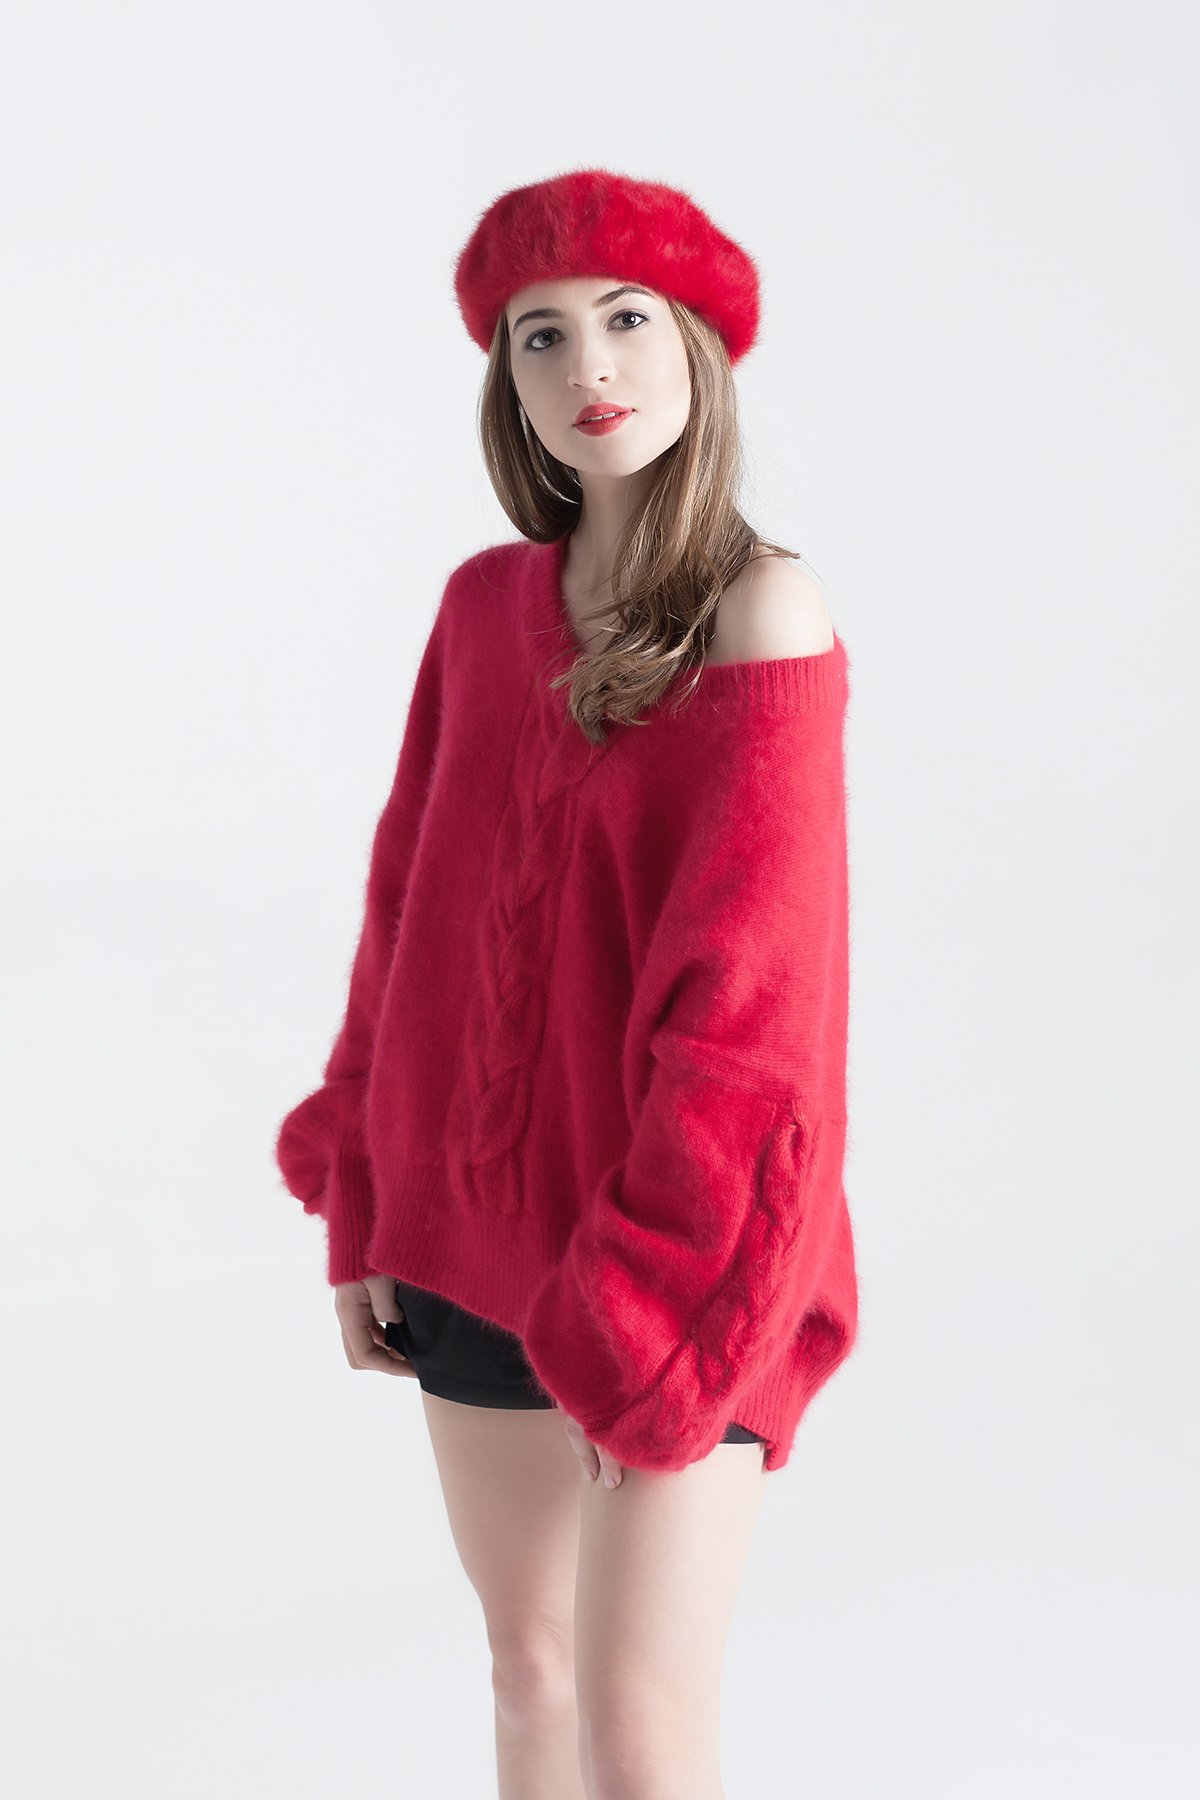 winter pullover - cozy sweater - fluffy sweater - wooly sweater - warm sweater - luxury wool pullover - red knit jumper - red - red knitted